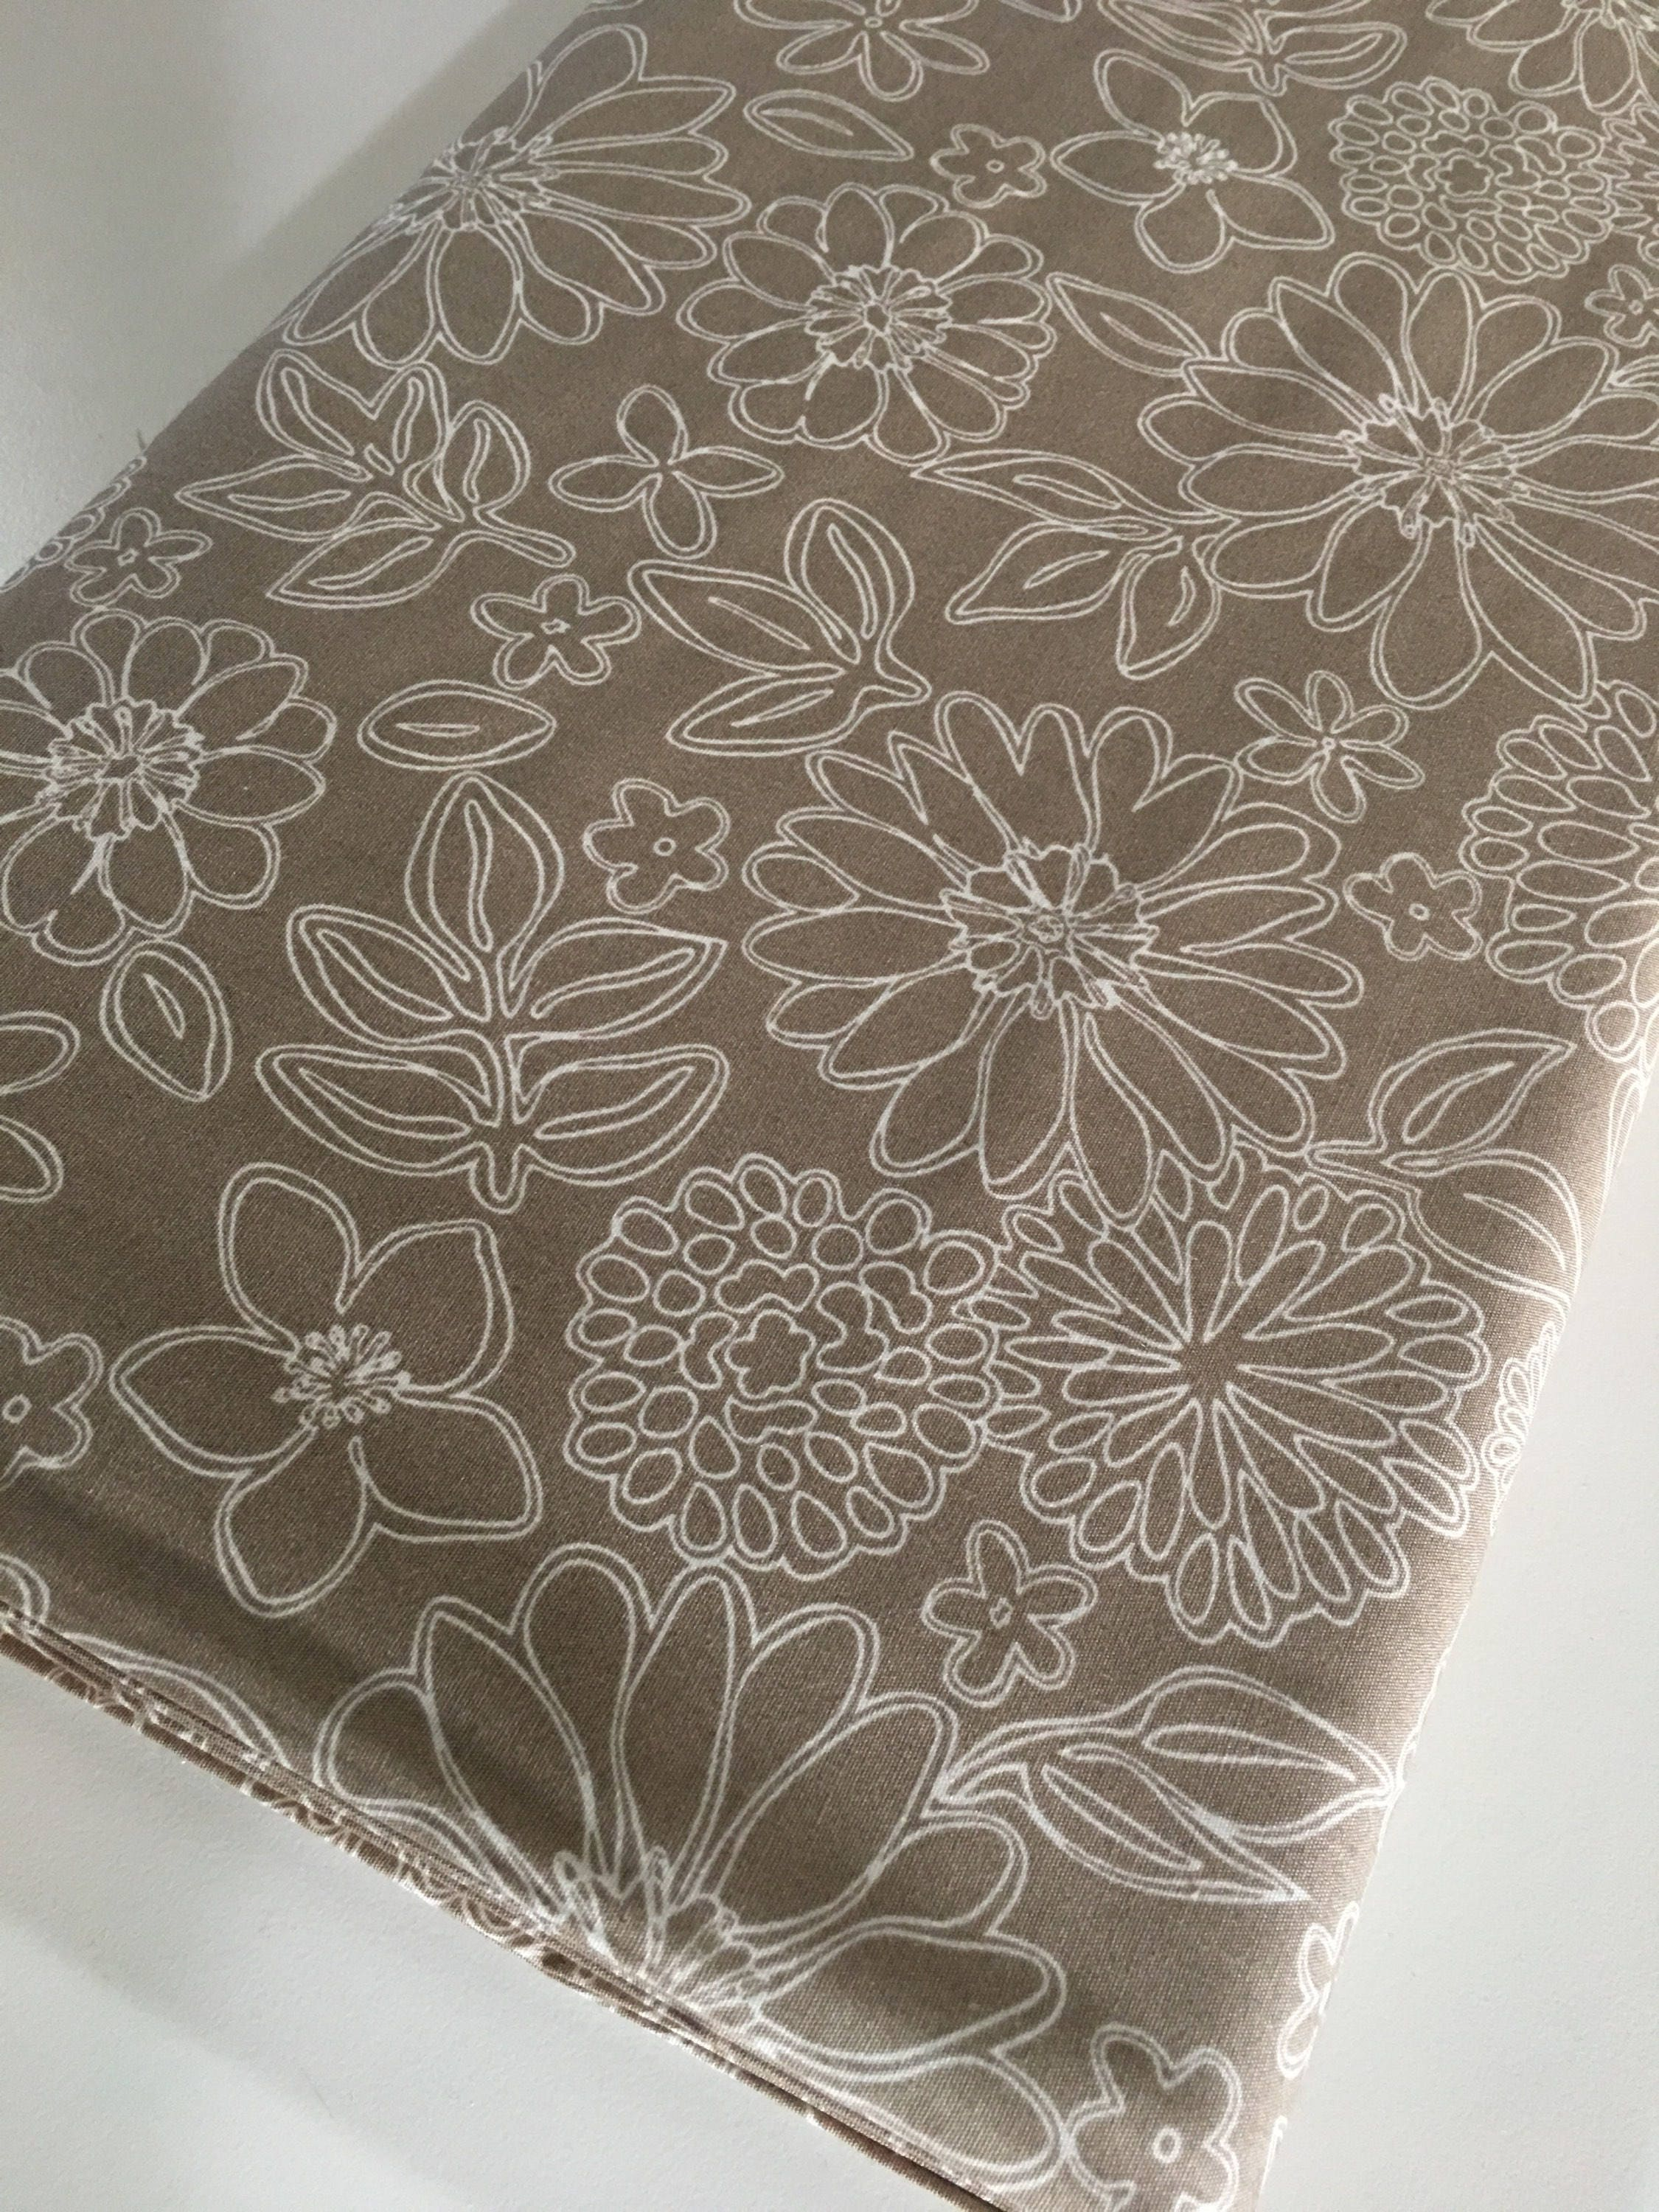 SALE fabric, Quilting fabric, Sewing fabric, Gift for her ... : discount quilting fabrics - Adamdwight.com